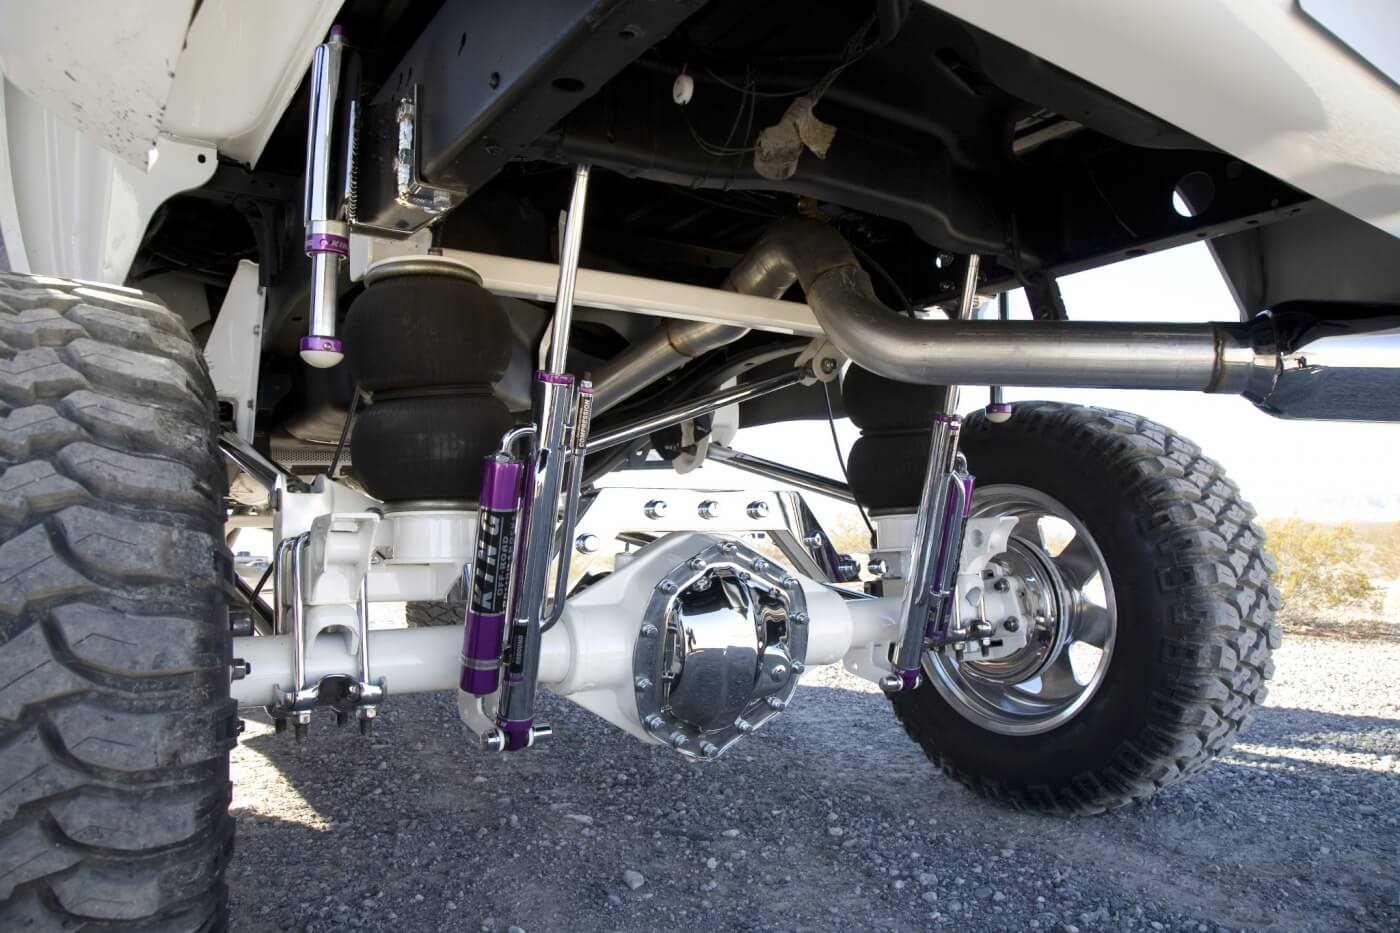 Here you see the rear shocks also from King. These are attached remote-reservoir units that work with the air bag rear suspension. Notice the chrome rear diff cover and brake backing plates. The axle is the original AAM 10.5 but it was powder coated white to match the body. Smith went show-quality all the way on this built.